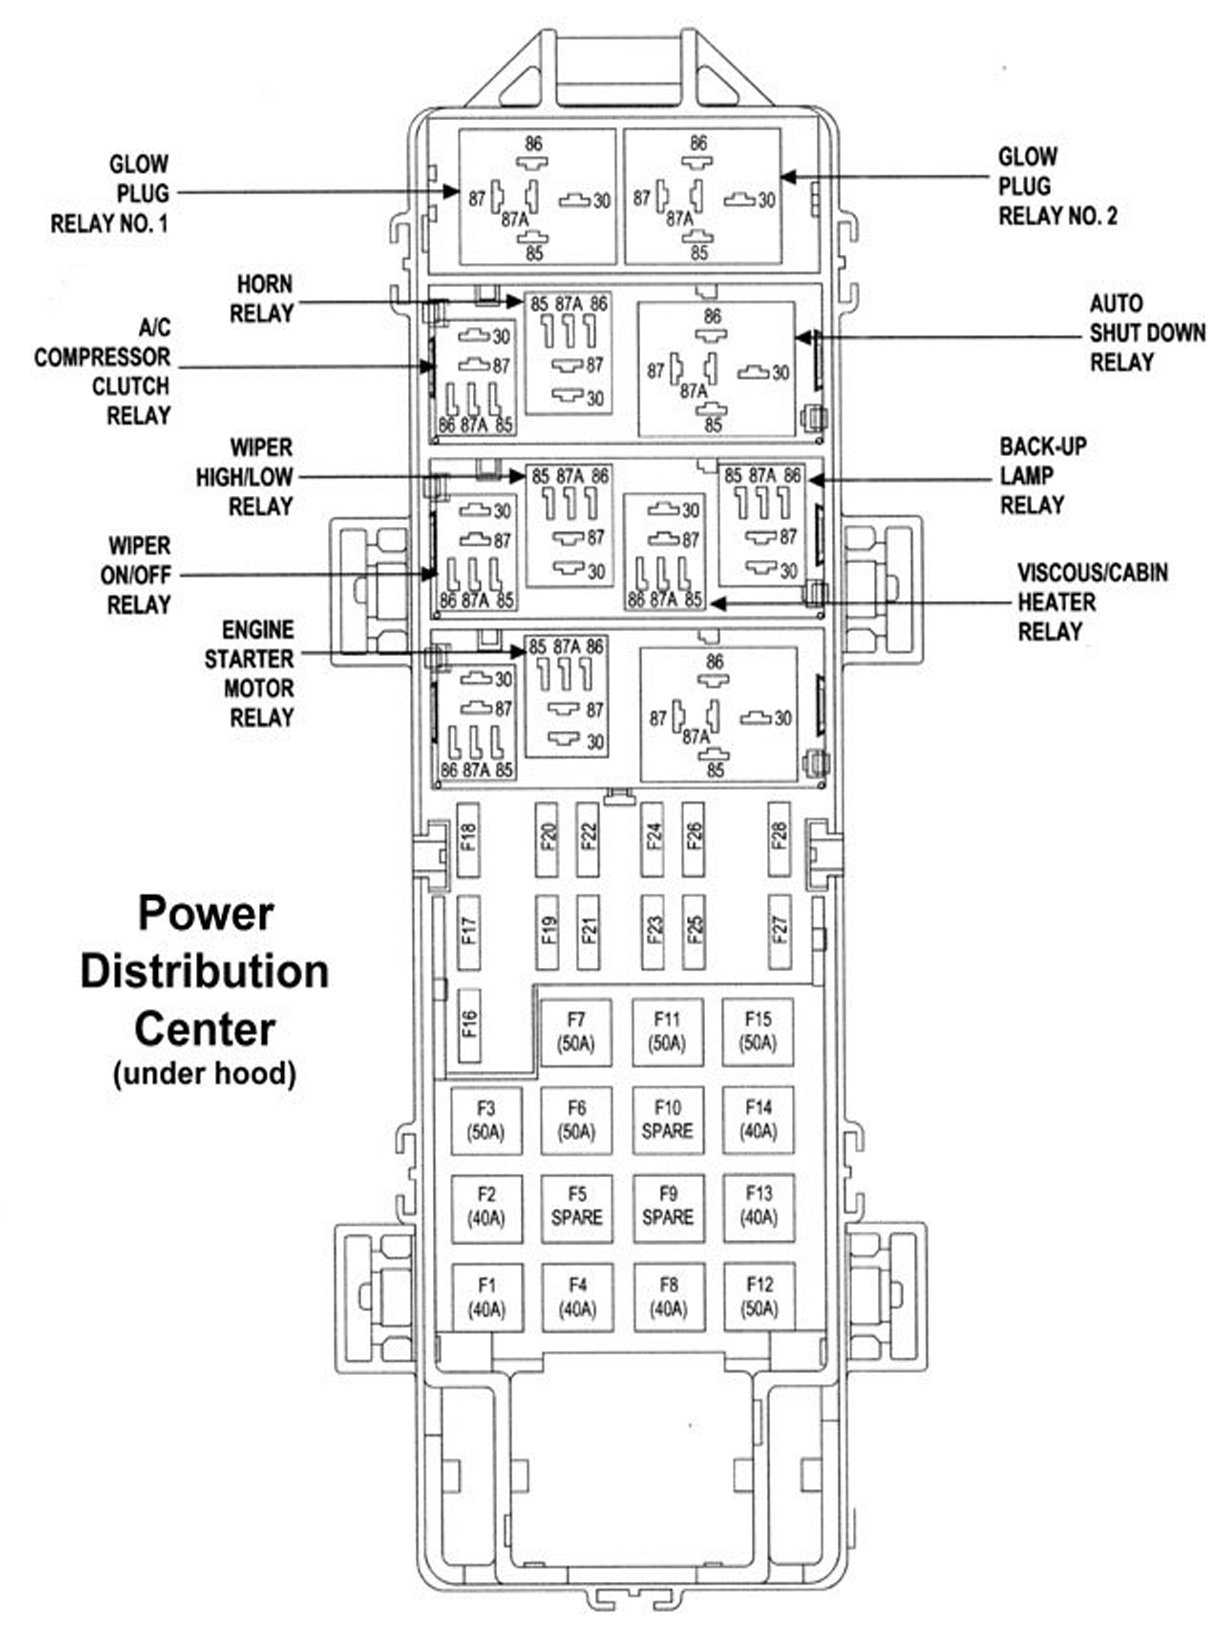 hight resolution of 1999 jeep grand cherokee laredo fuse box wiring diagram sheet 1999 jeep grand cherokee relay box